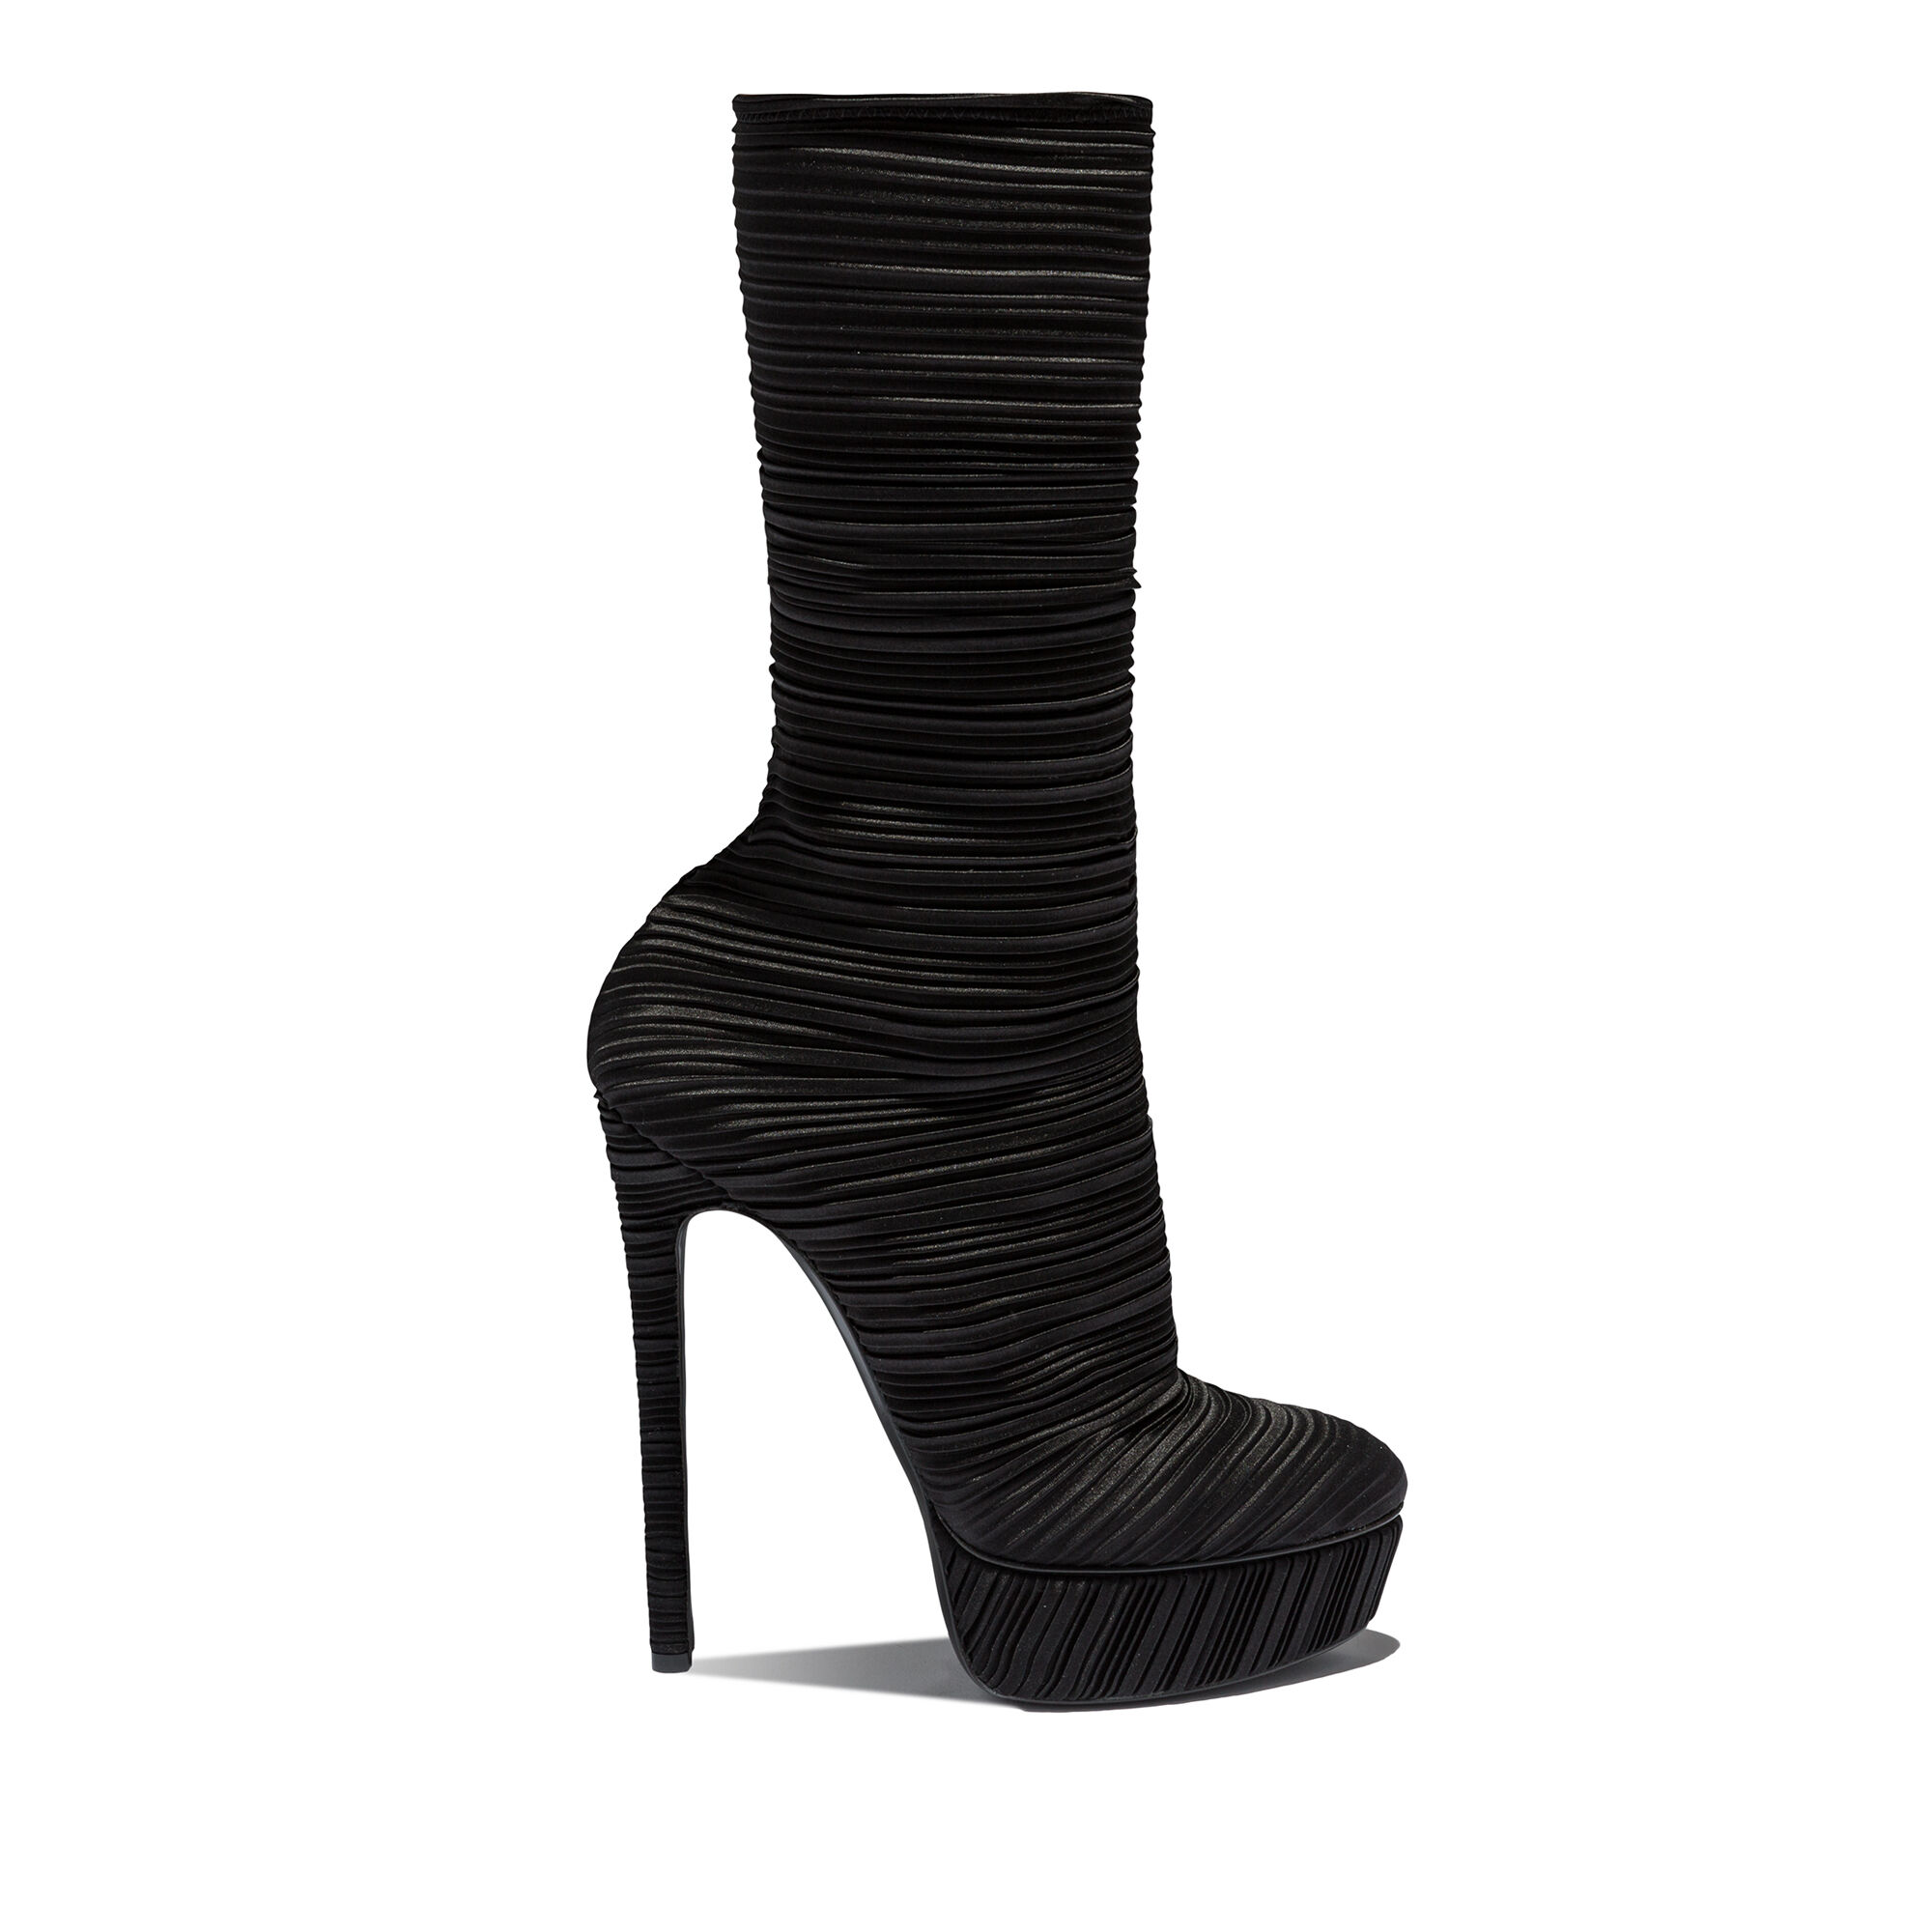 Casadei pleated platform boots buy cheap online H5ms61WNod